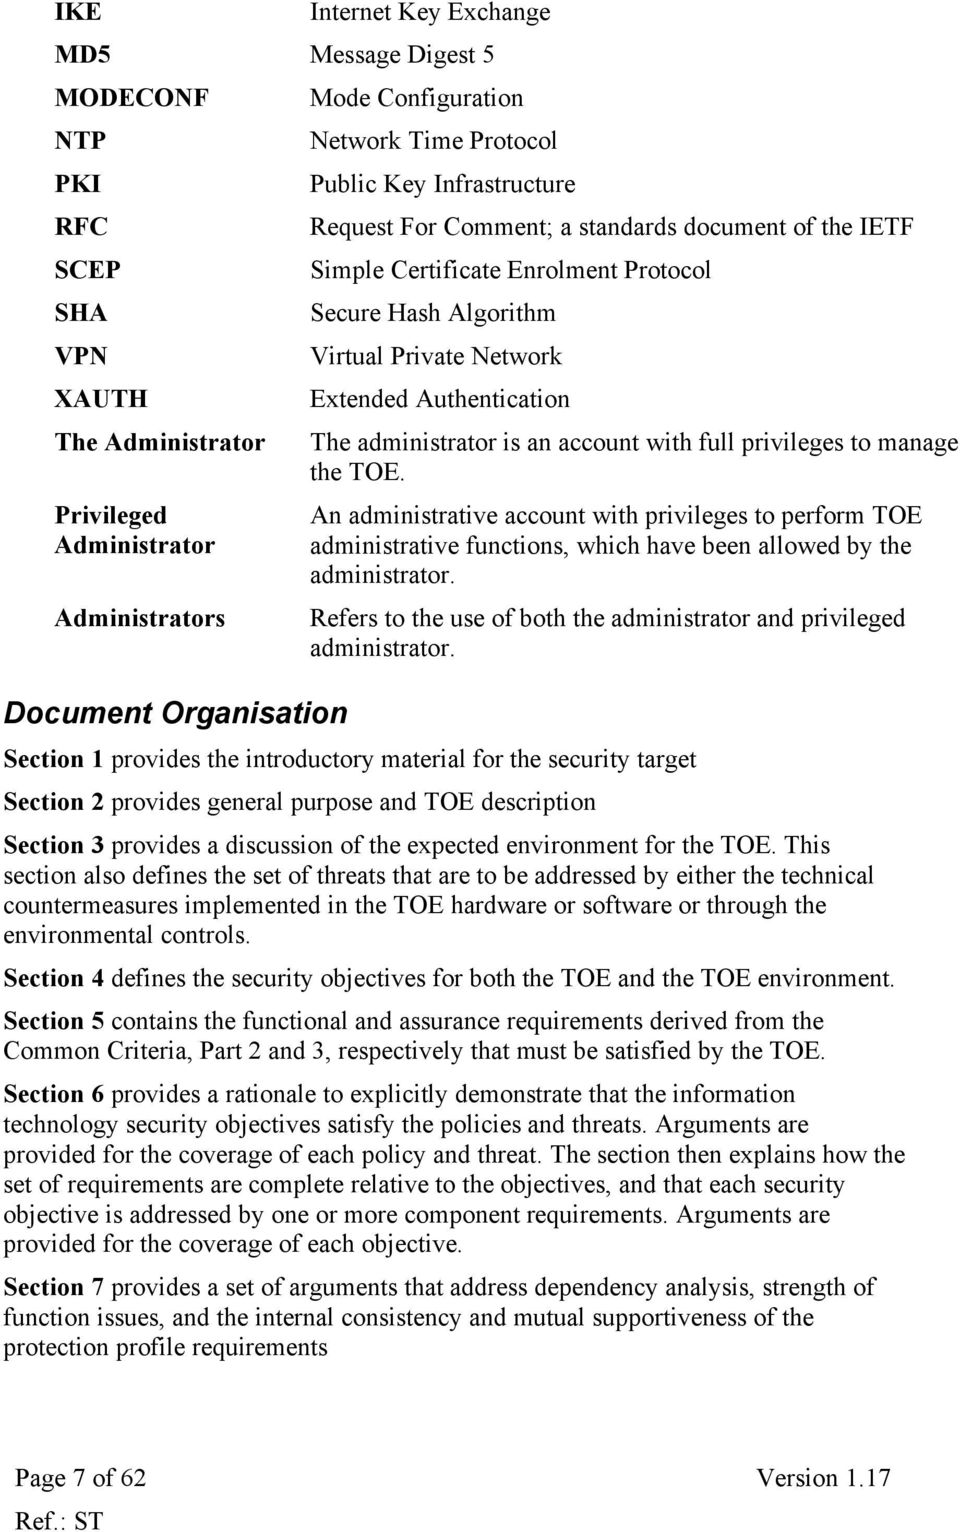 The administrator is an account with full privileges to manage the TOE. An administrative account with privileges to perform TOE administrative functions, which have been allowed by the administrator.